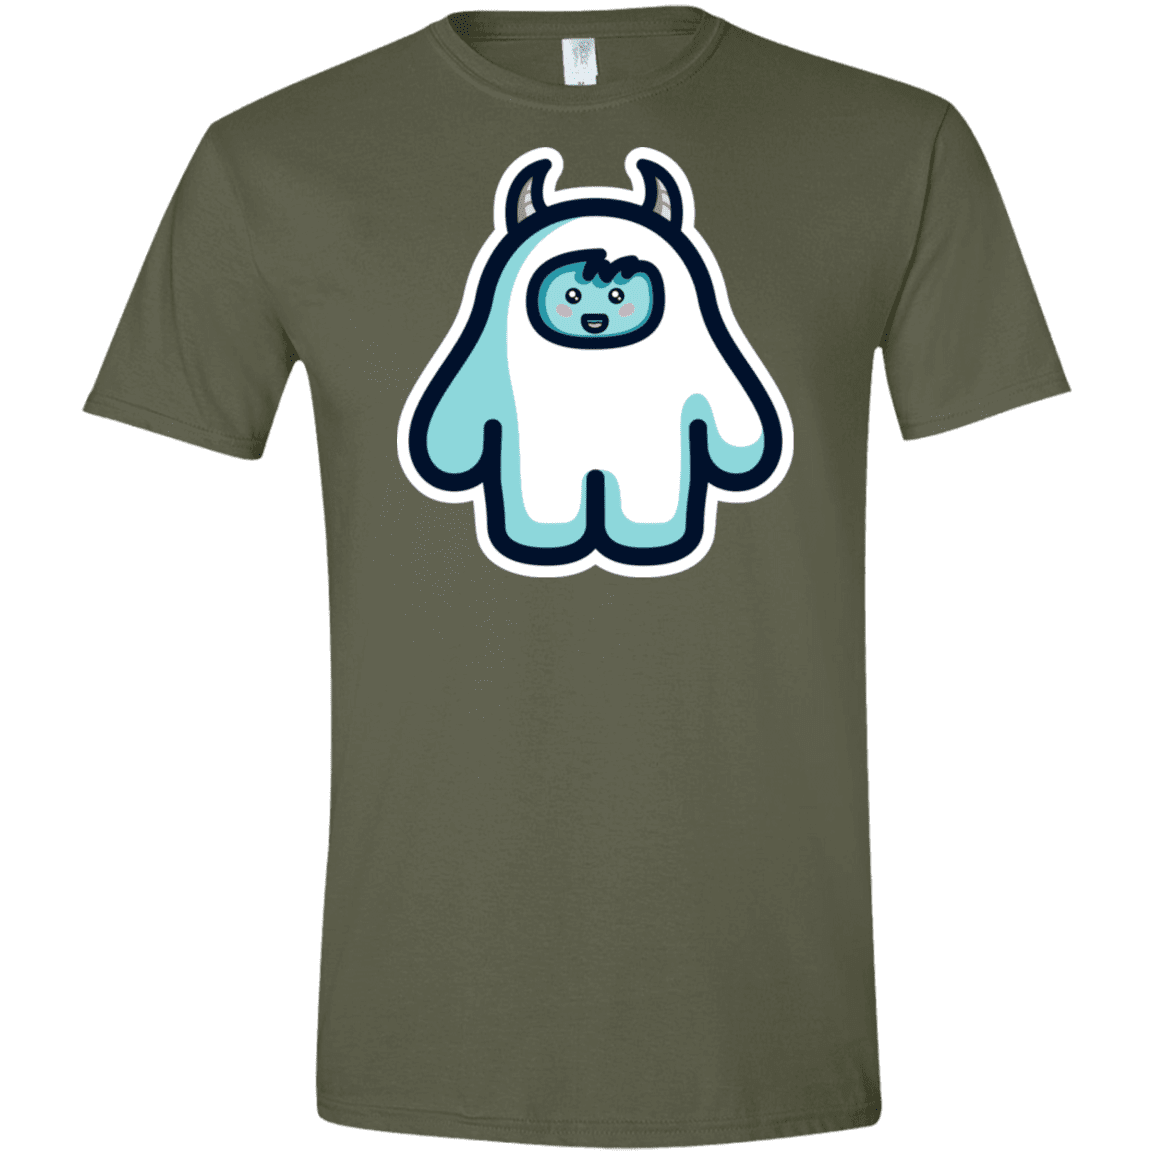 T-Shirts Military Green / S Kawaii Cute Yeti Men's Semi-Fitted Softstyle